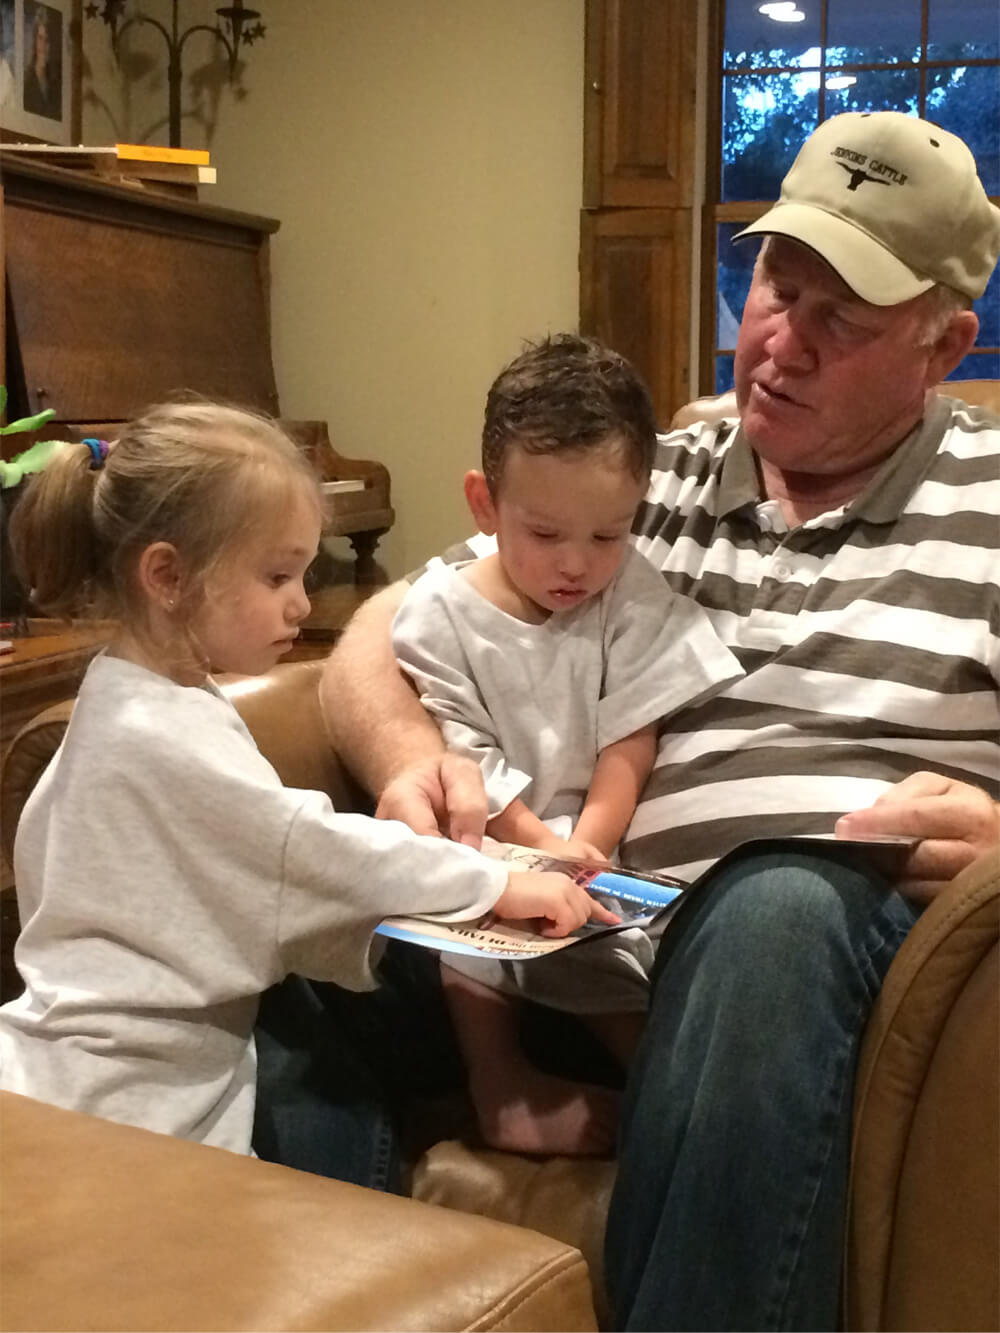 Russell reading to grandchildren